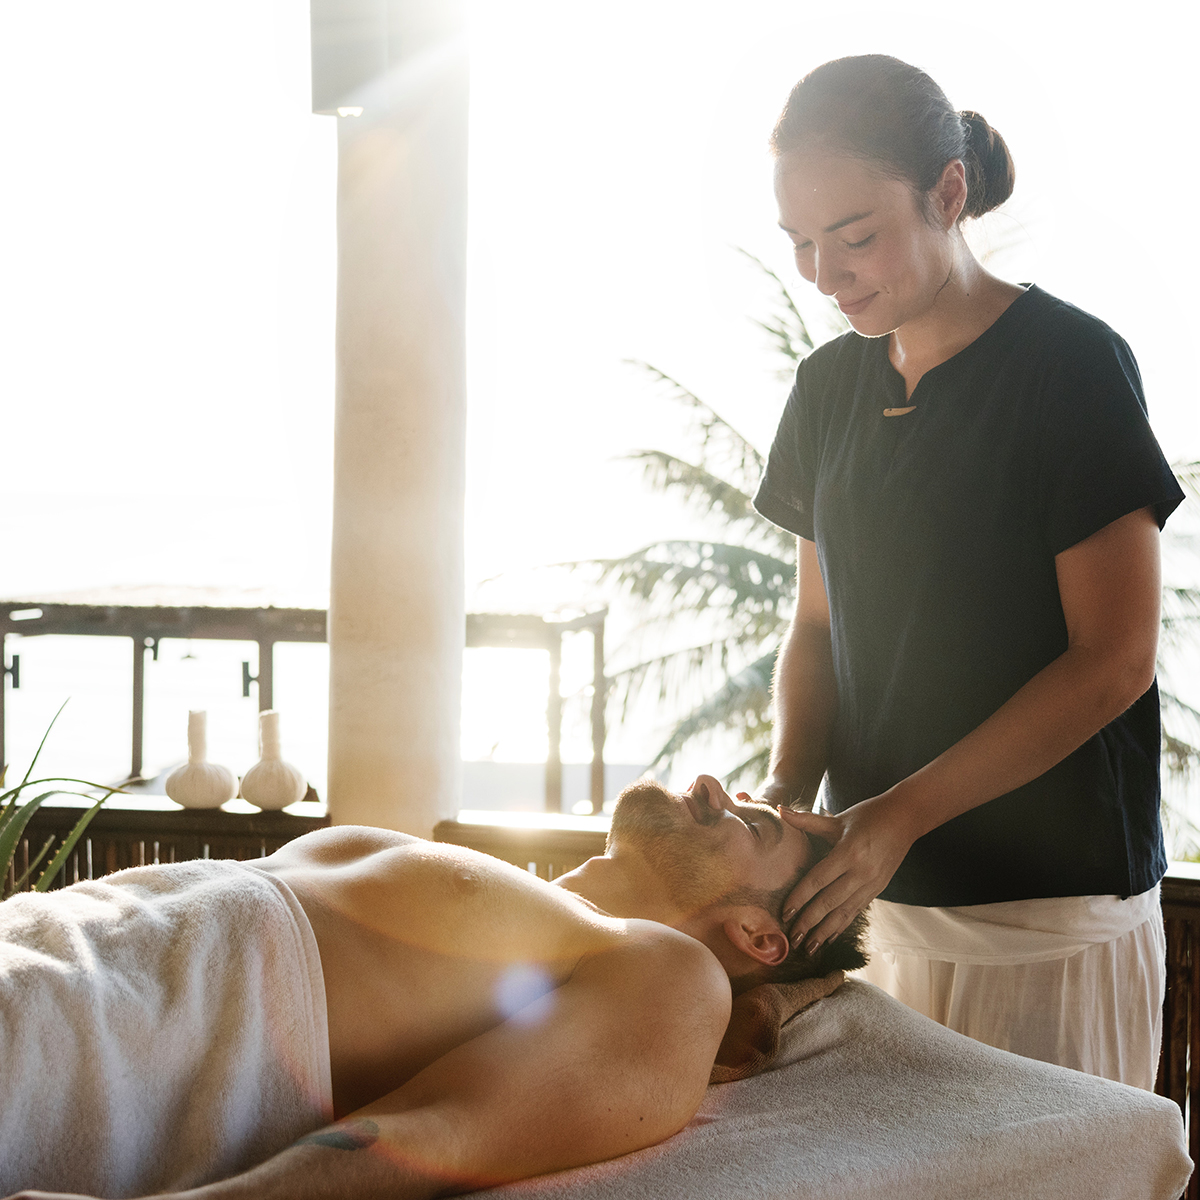 + Massage - Hit up Groupon, Yelp, or your favorite local massage parlor and get a gift certificate for your friend. I recommend a couples' massage if they have a partner, or a certificate for more than one rub.